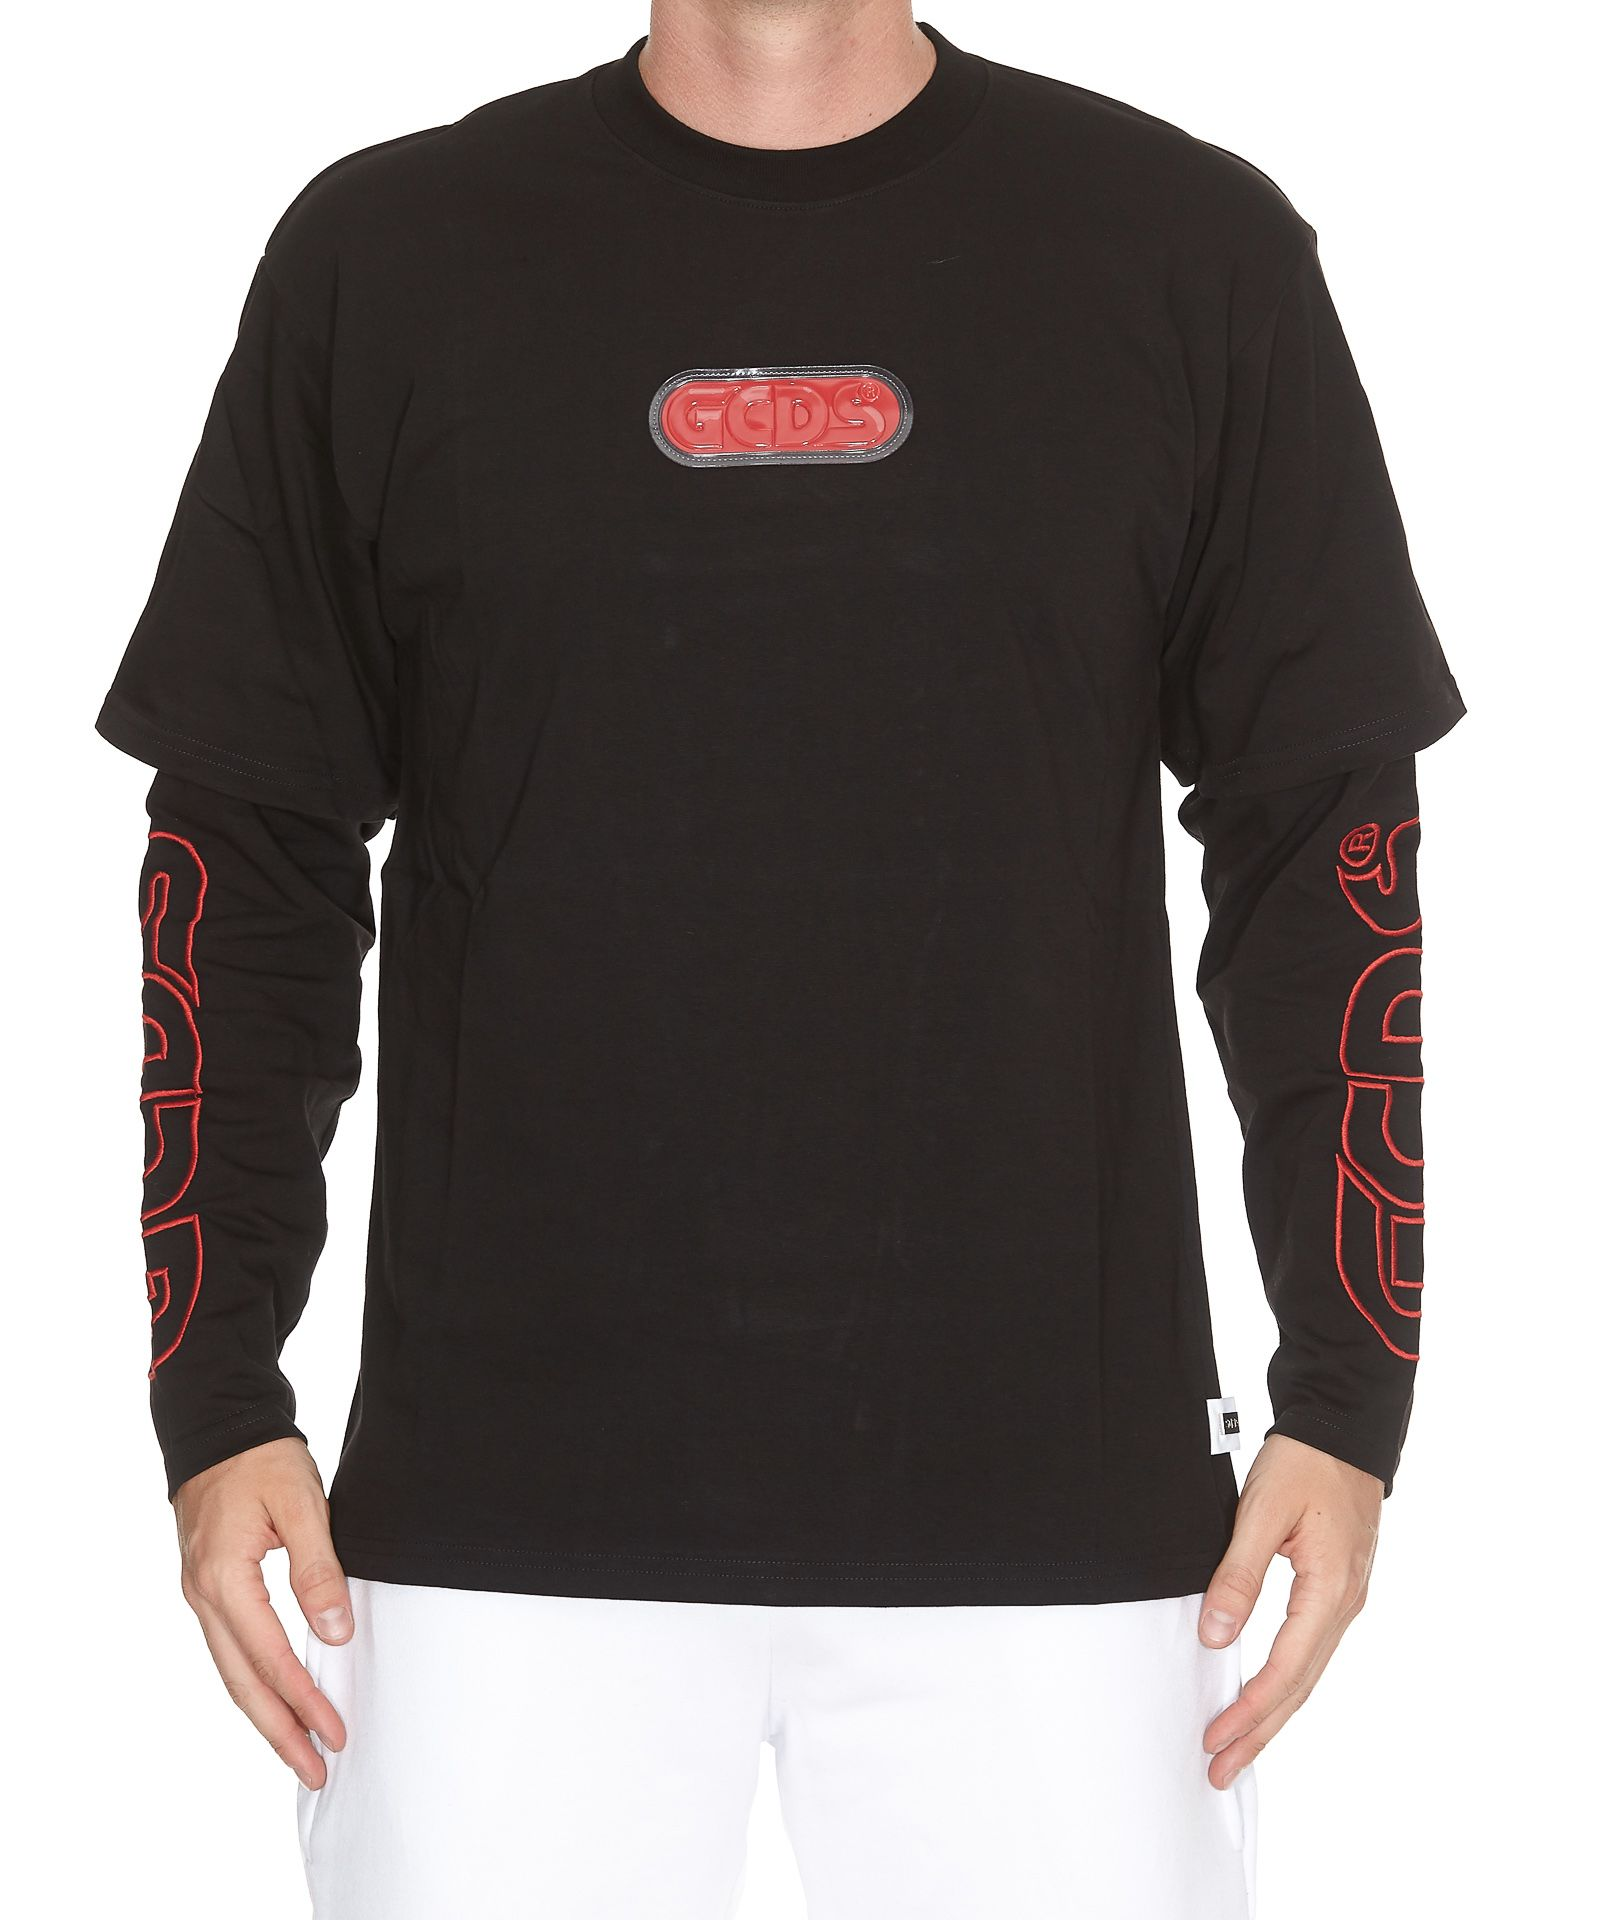 GCDS DOUBLE SLEEVES T-SHIRT